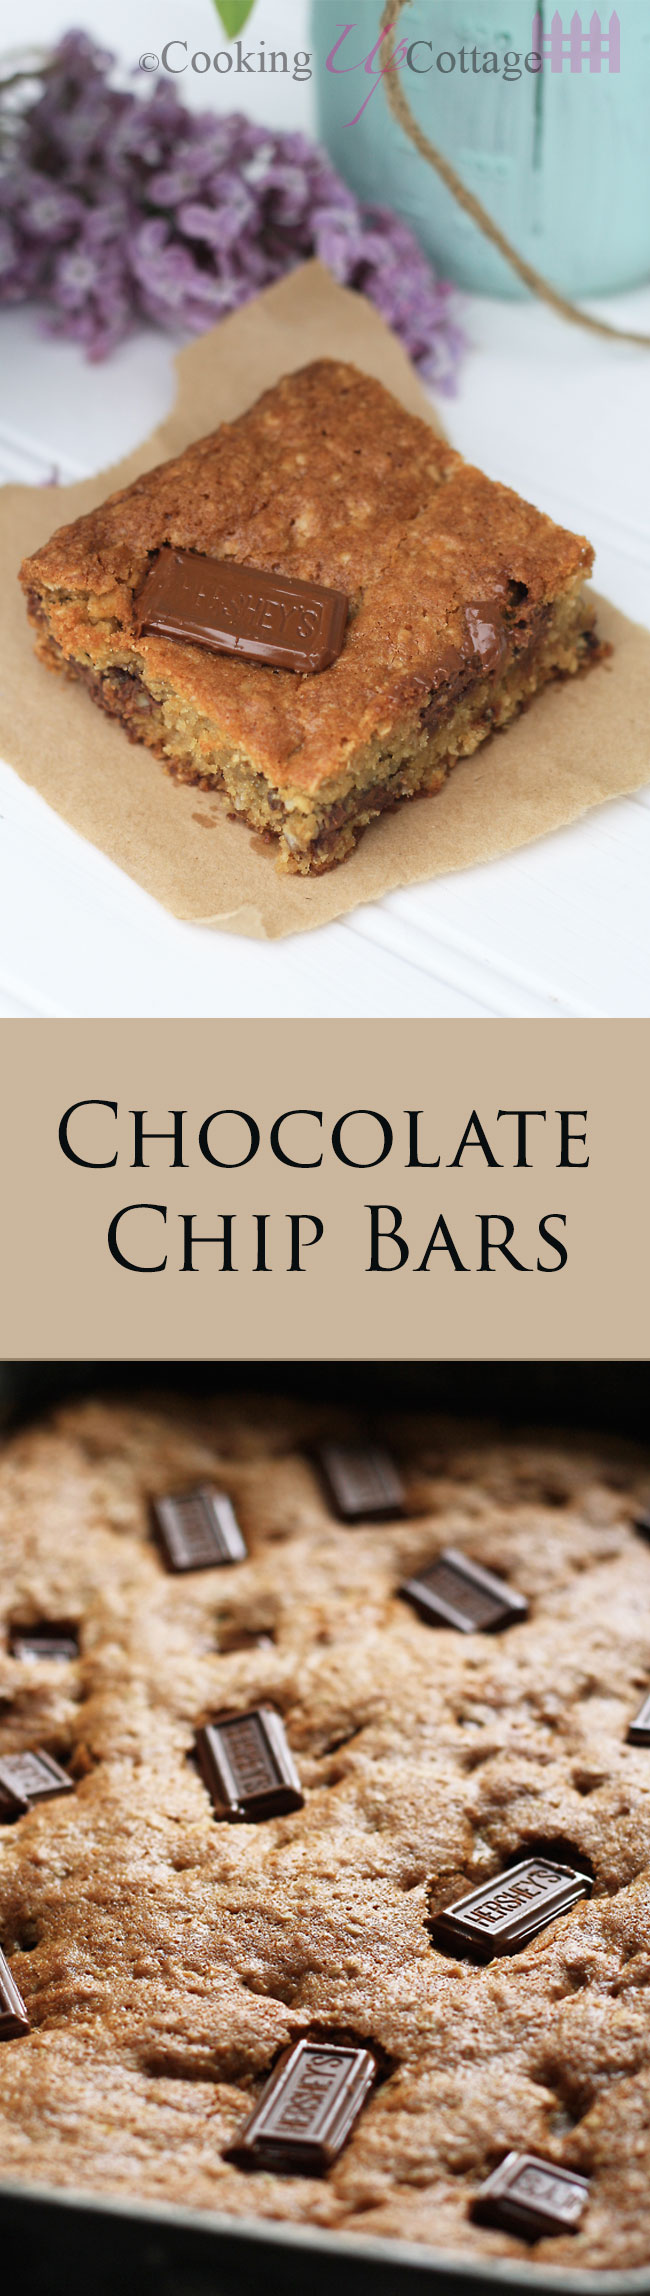 Chocolate Chip Bars – Cooking Up Cottage